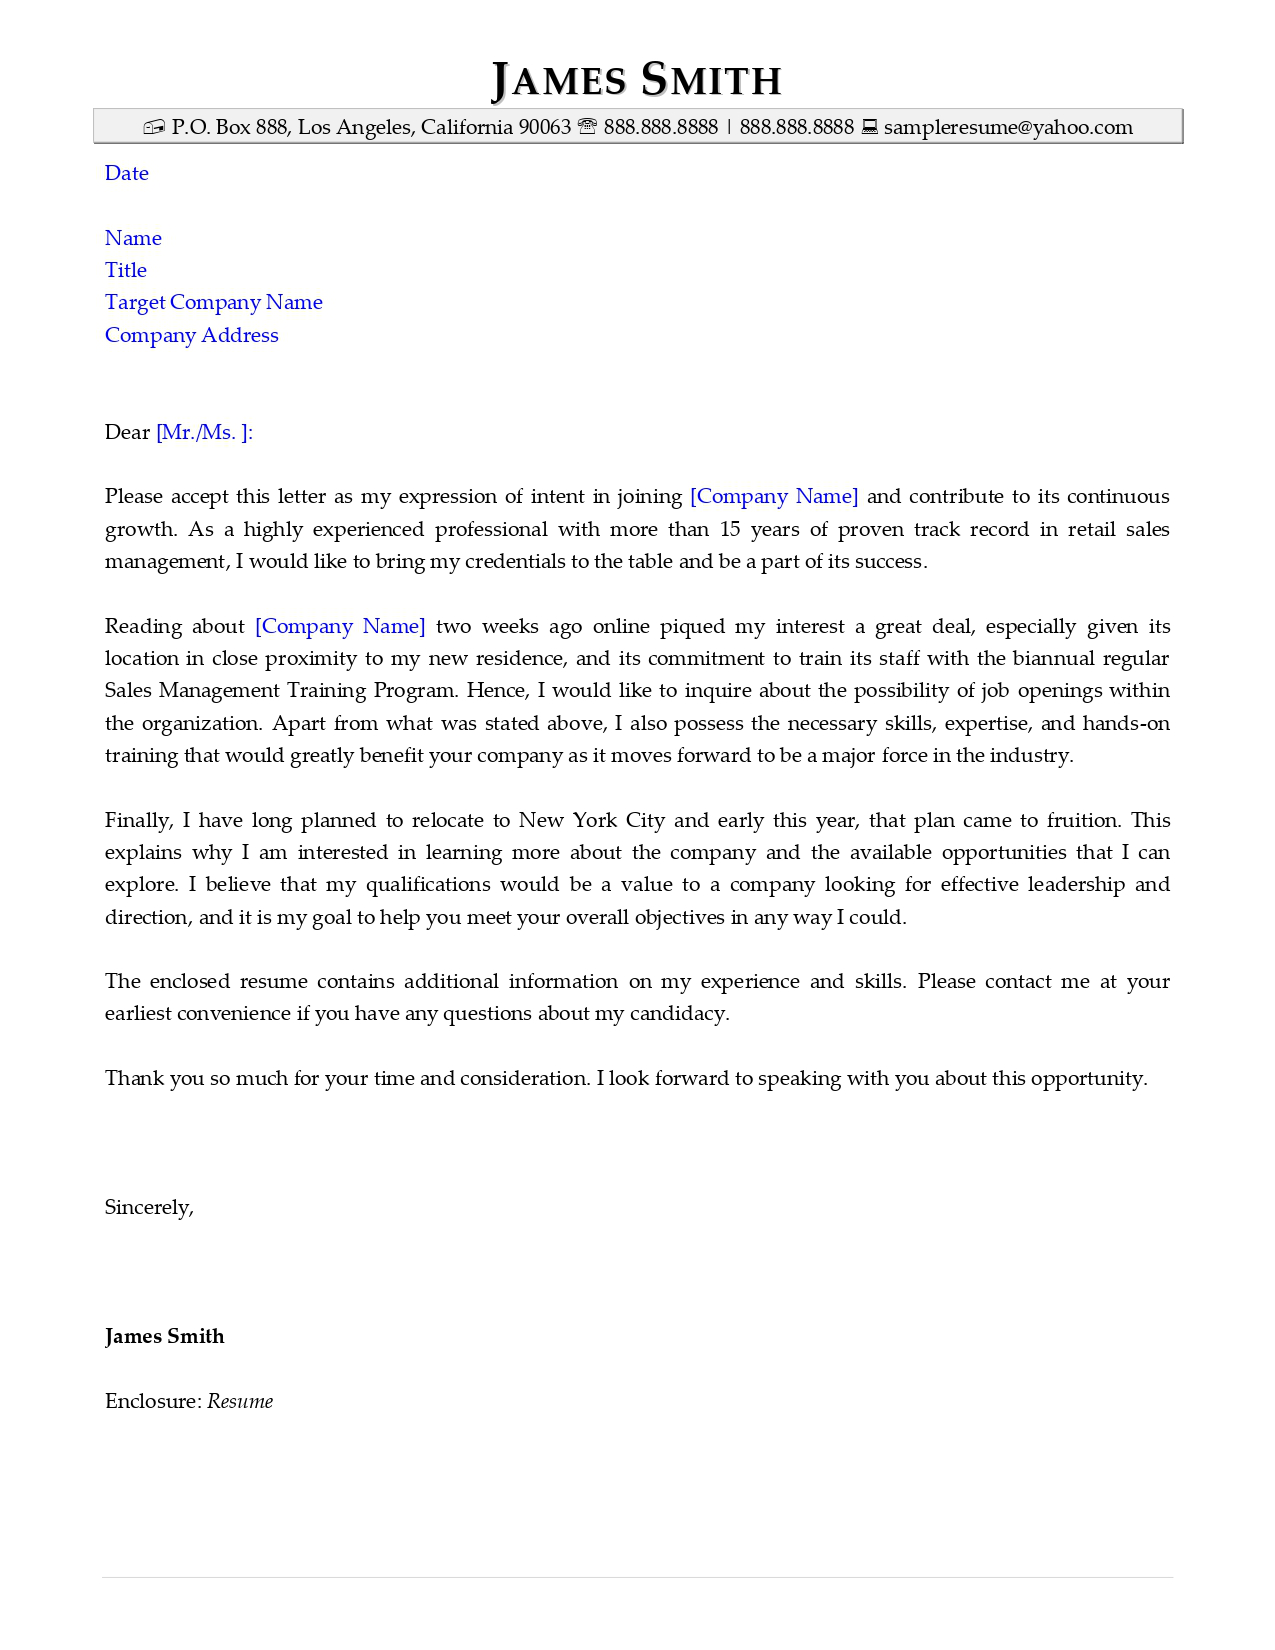 Prospecting resume cover letter example from Resume Valley